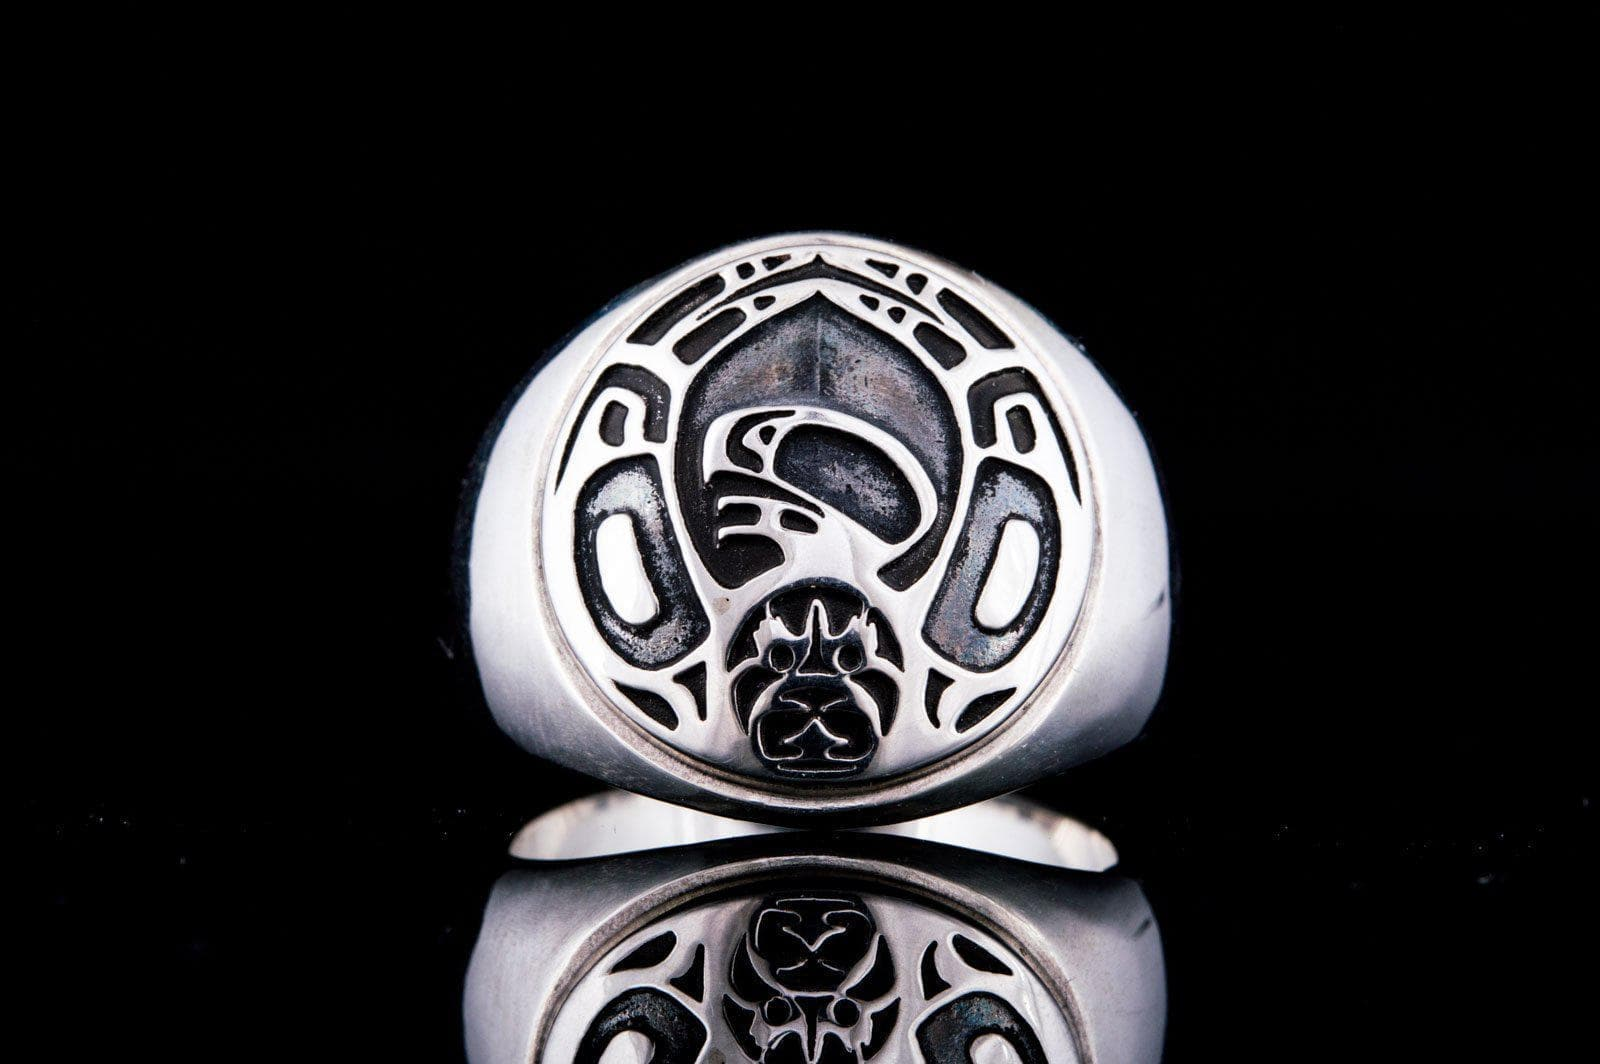 Rings Aztec Sterling Silver Handcrafted Ornament Ring Ancient Treasures Ancientreasures Viking Odin Thor Mjolnir Celtic Ancient Egypt Norse Norse Mythology